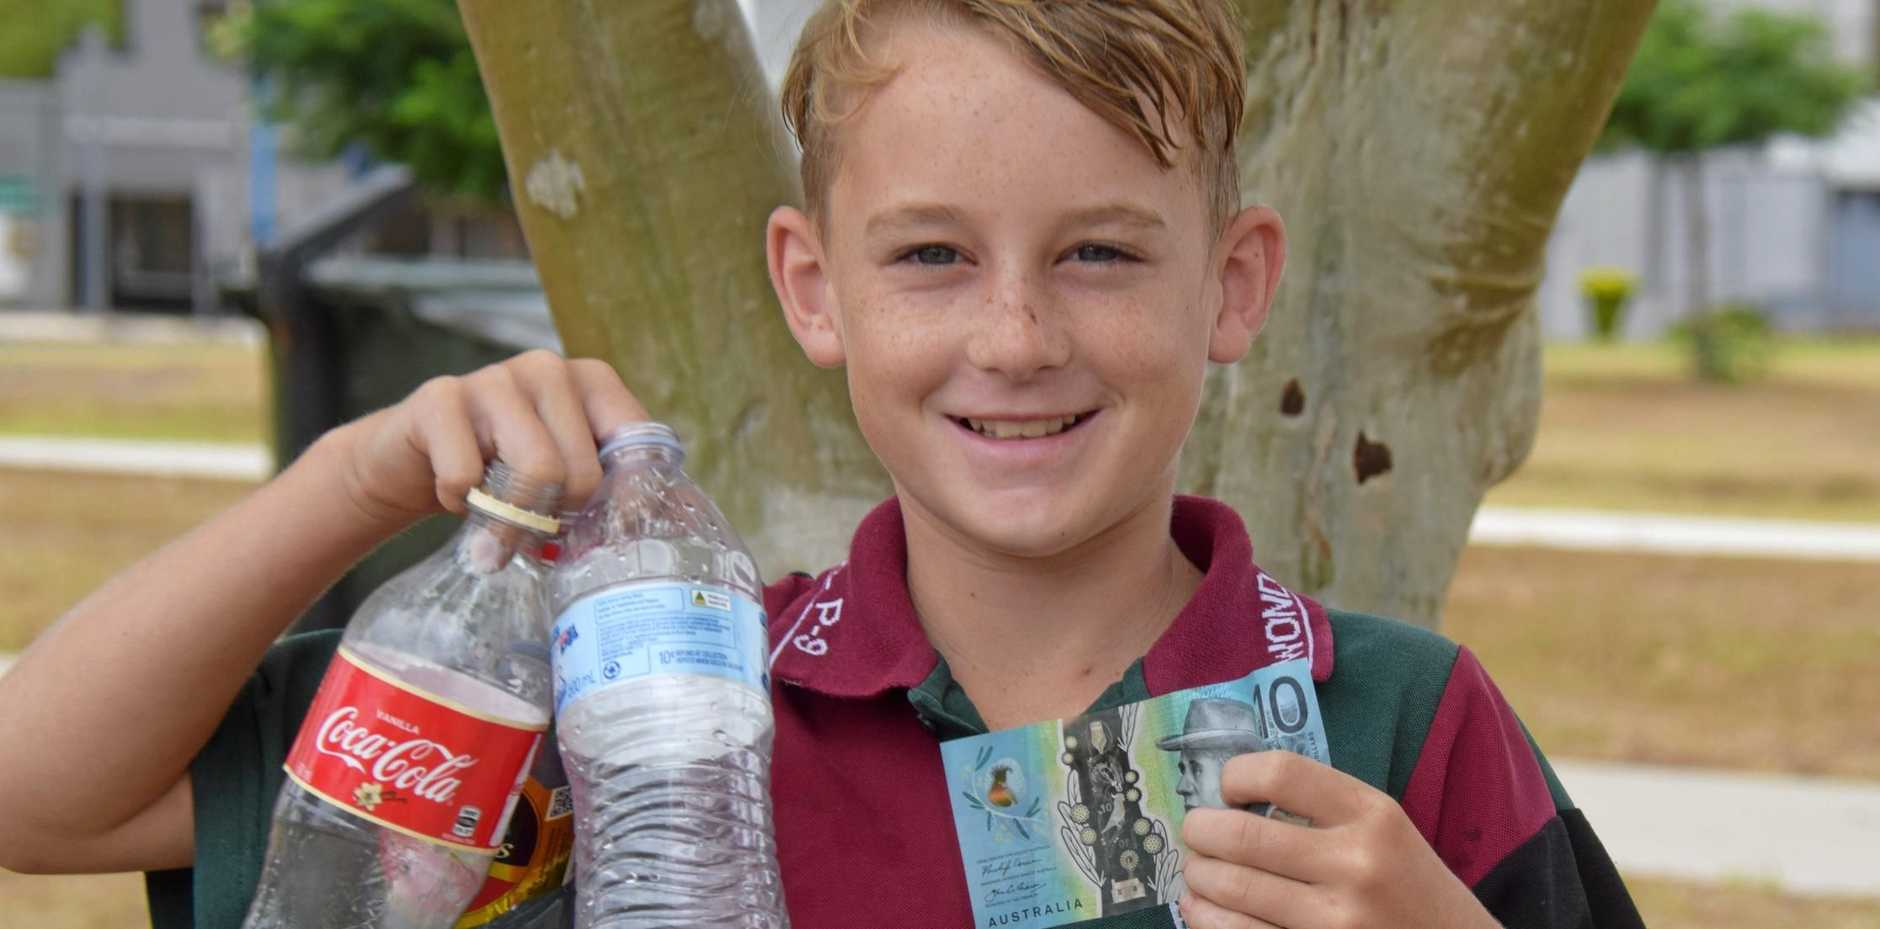 BOTTLED UP: 12-year-old Dominic Law has made nearly $600 in only a few months collecting recyclable bottles.